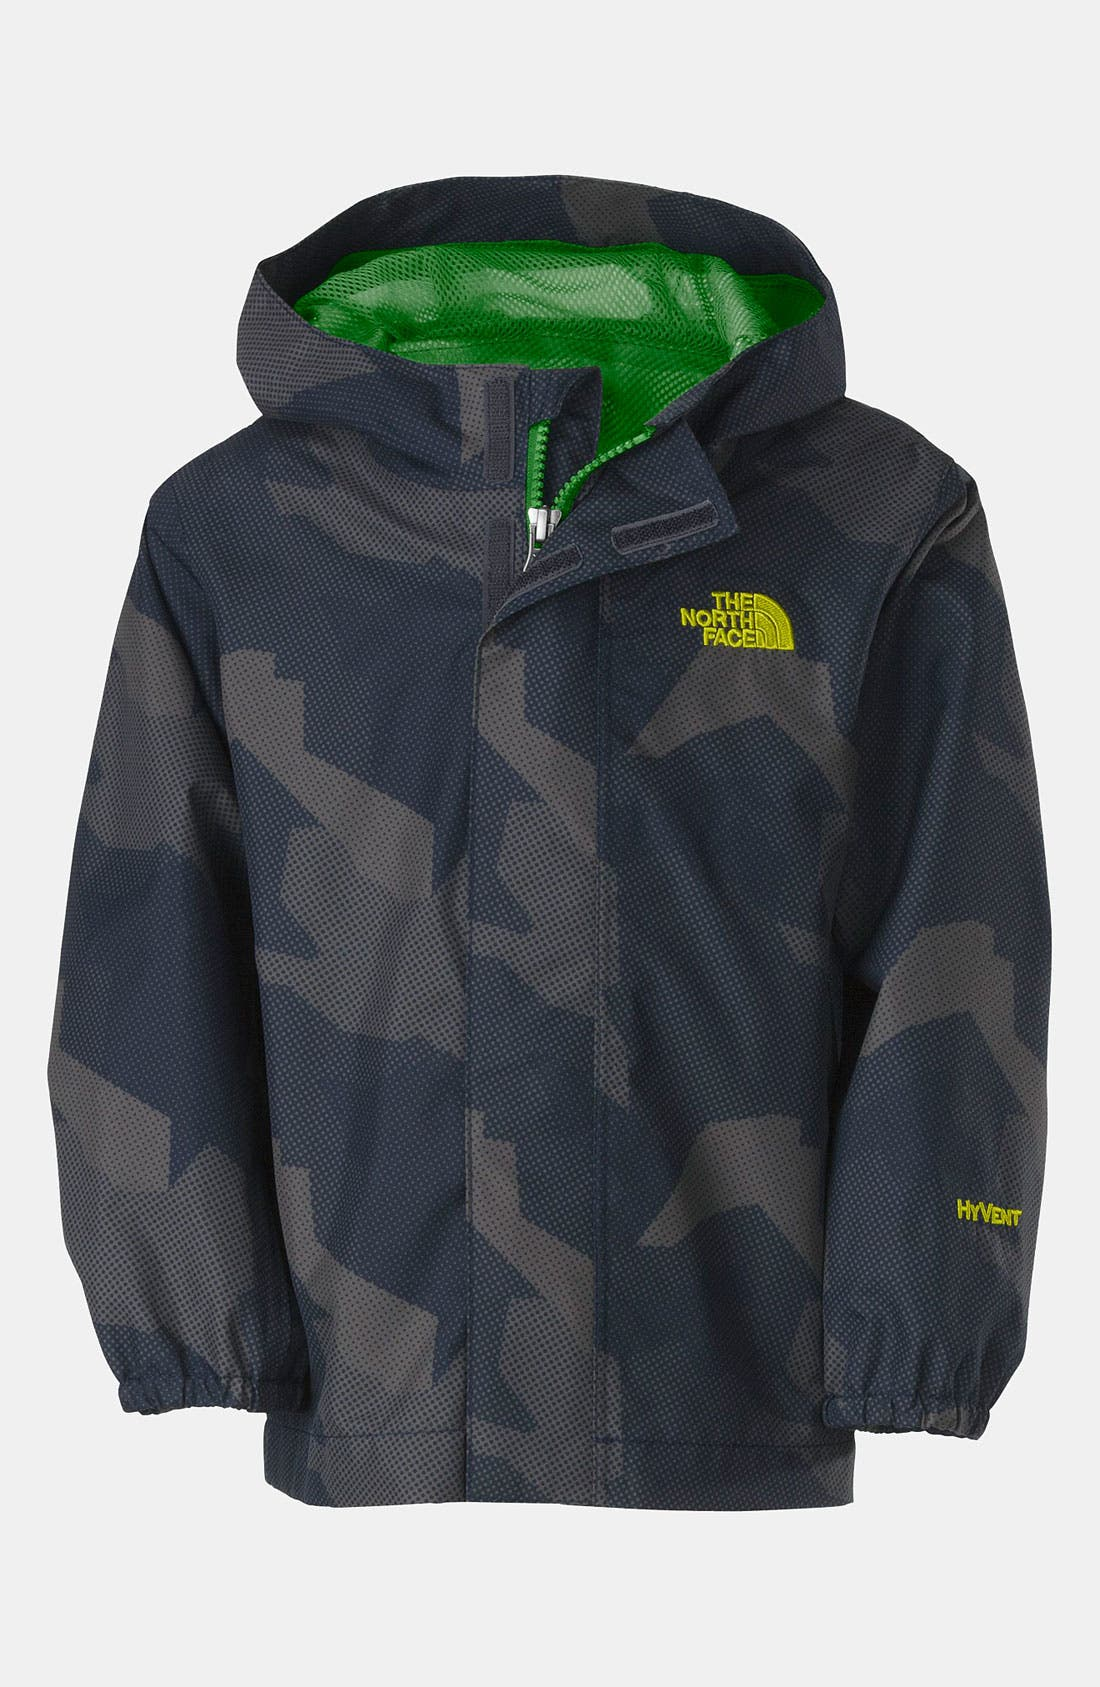 Main Image - The North Face 'Tailout' Raincoat (Toddler)